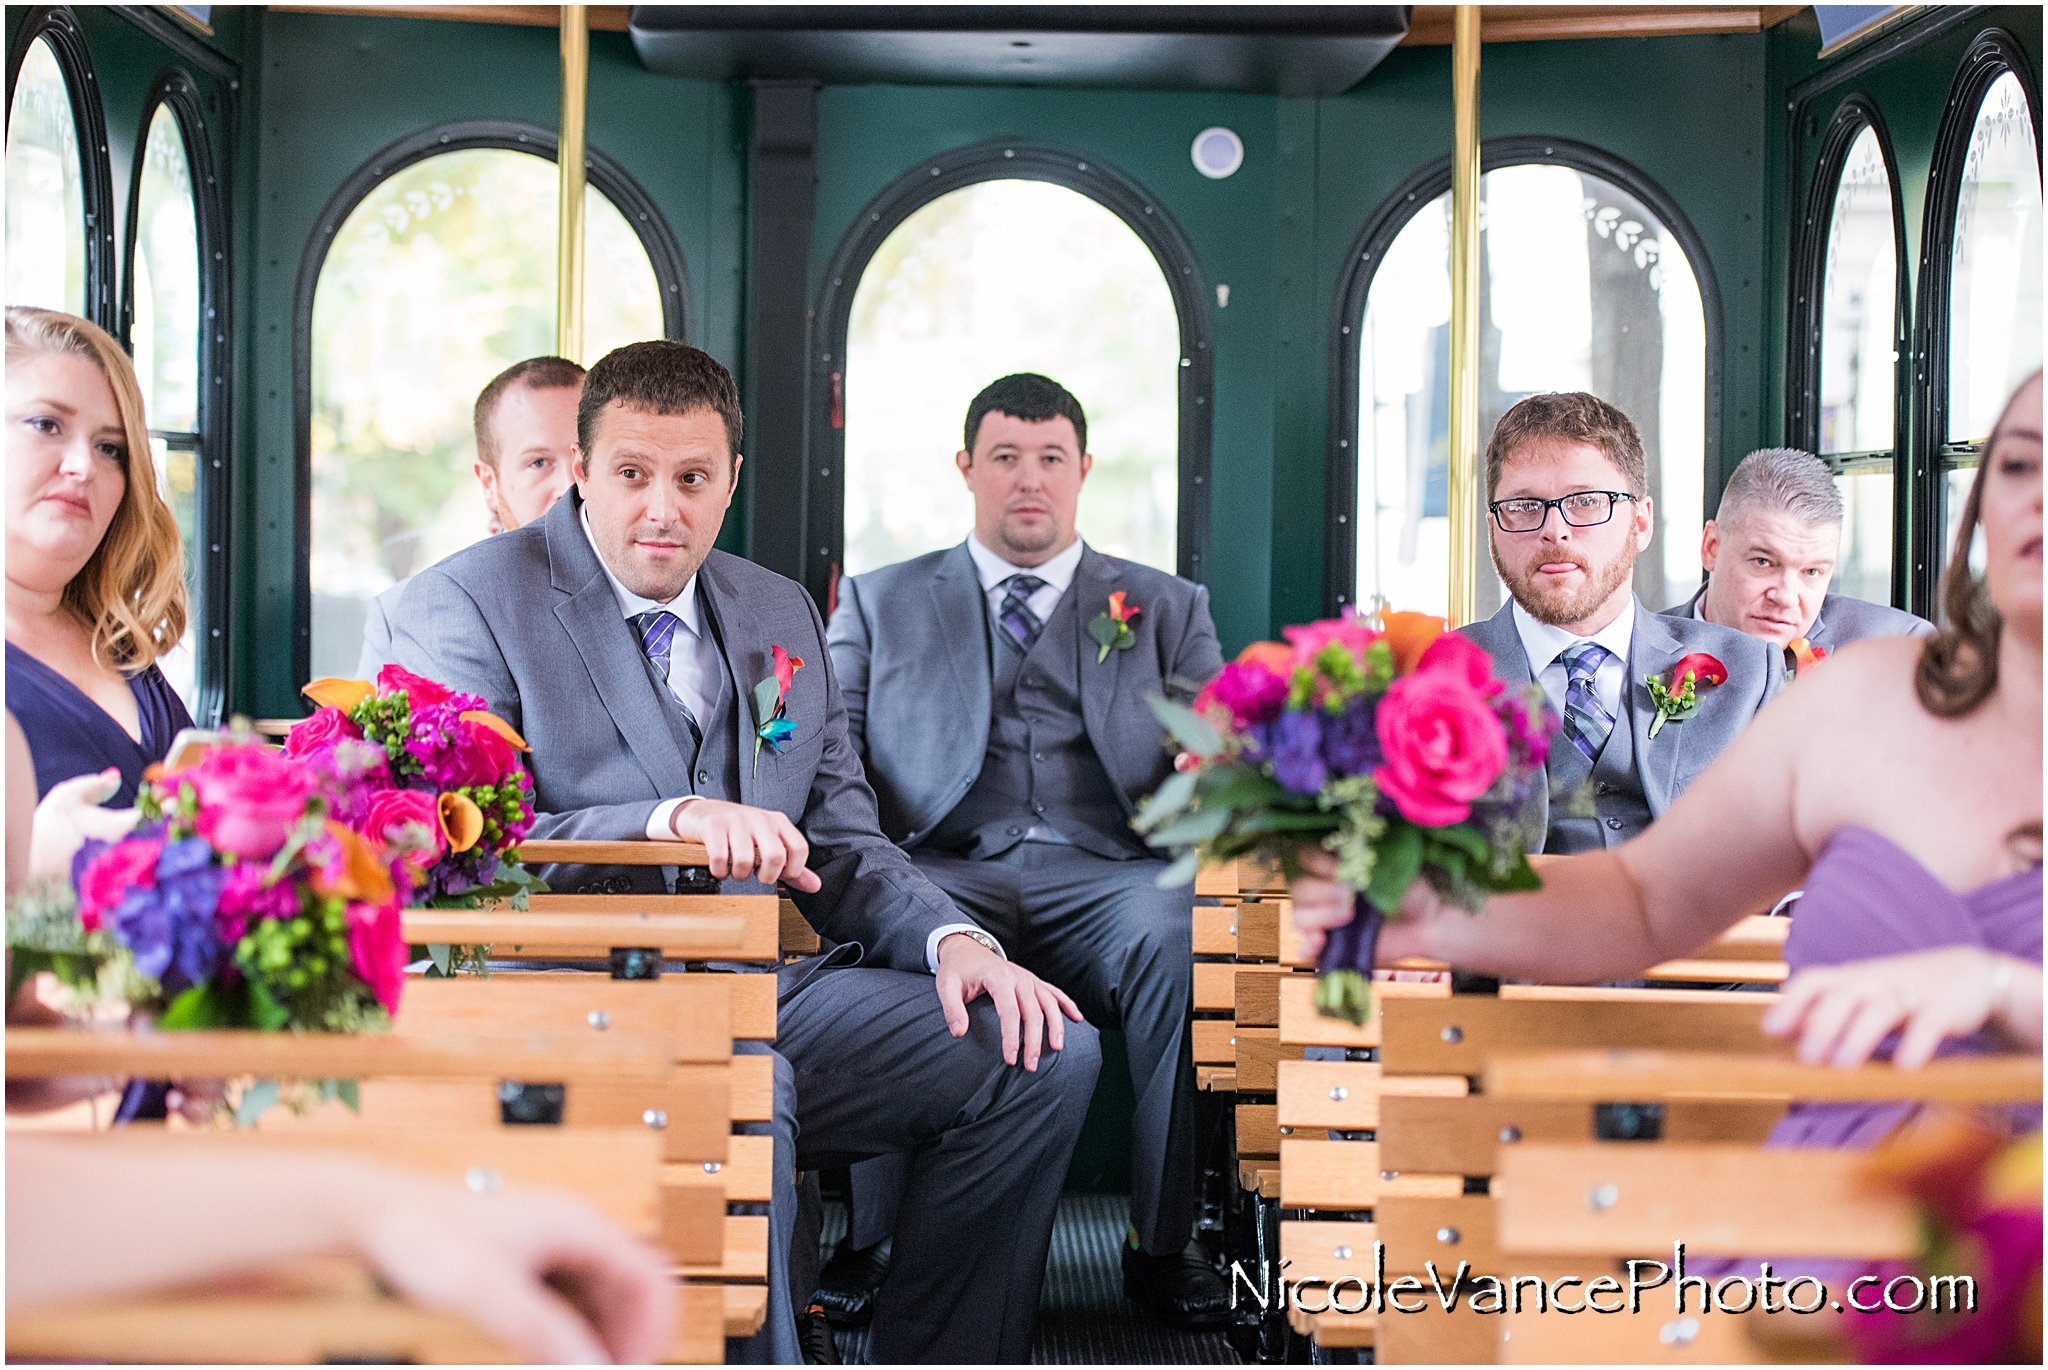 The groom on the trolley, provided by Richmond Trolley.